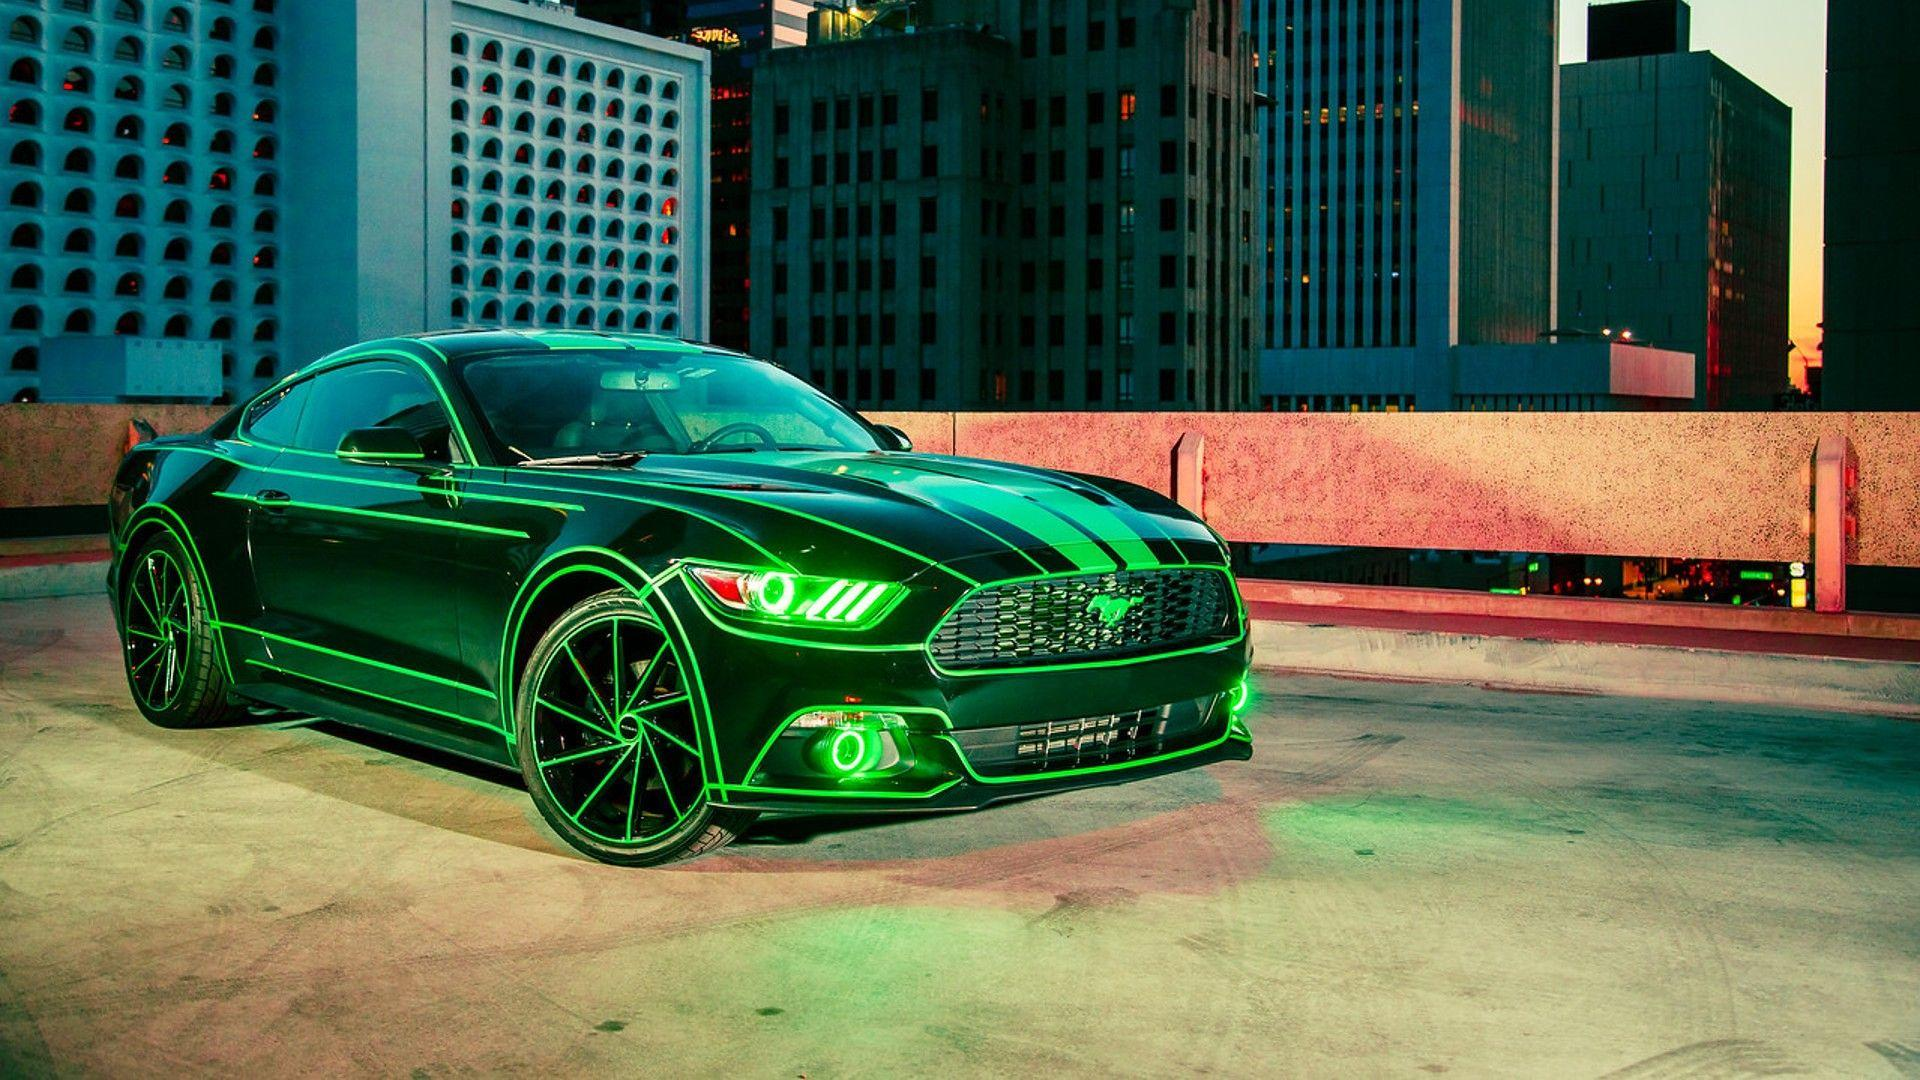 Sci fi fan gives tron treatment to his 2015 ford mustang